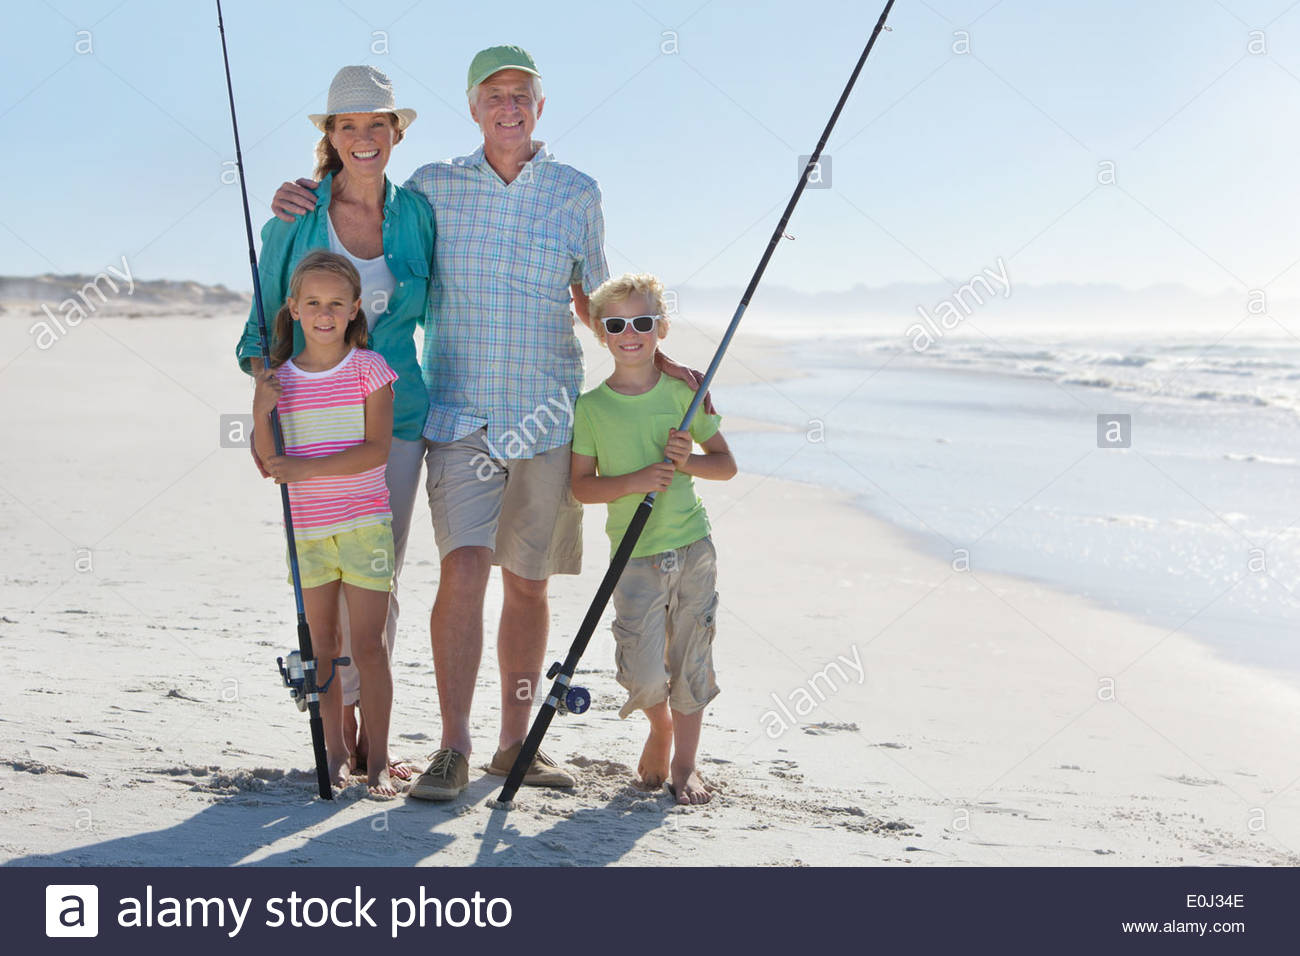 Grandparents and grandchildren with fishing rods on sunny beach - Stock Image